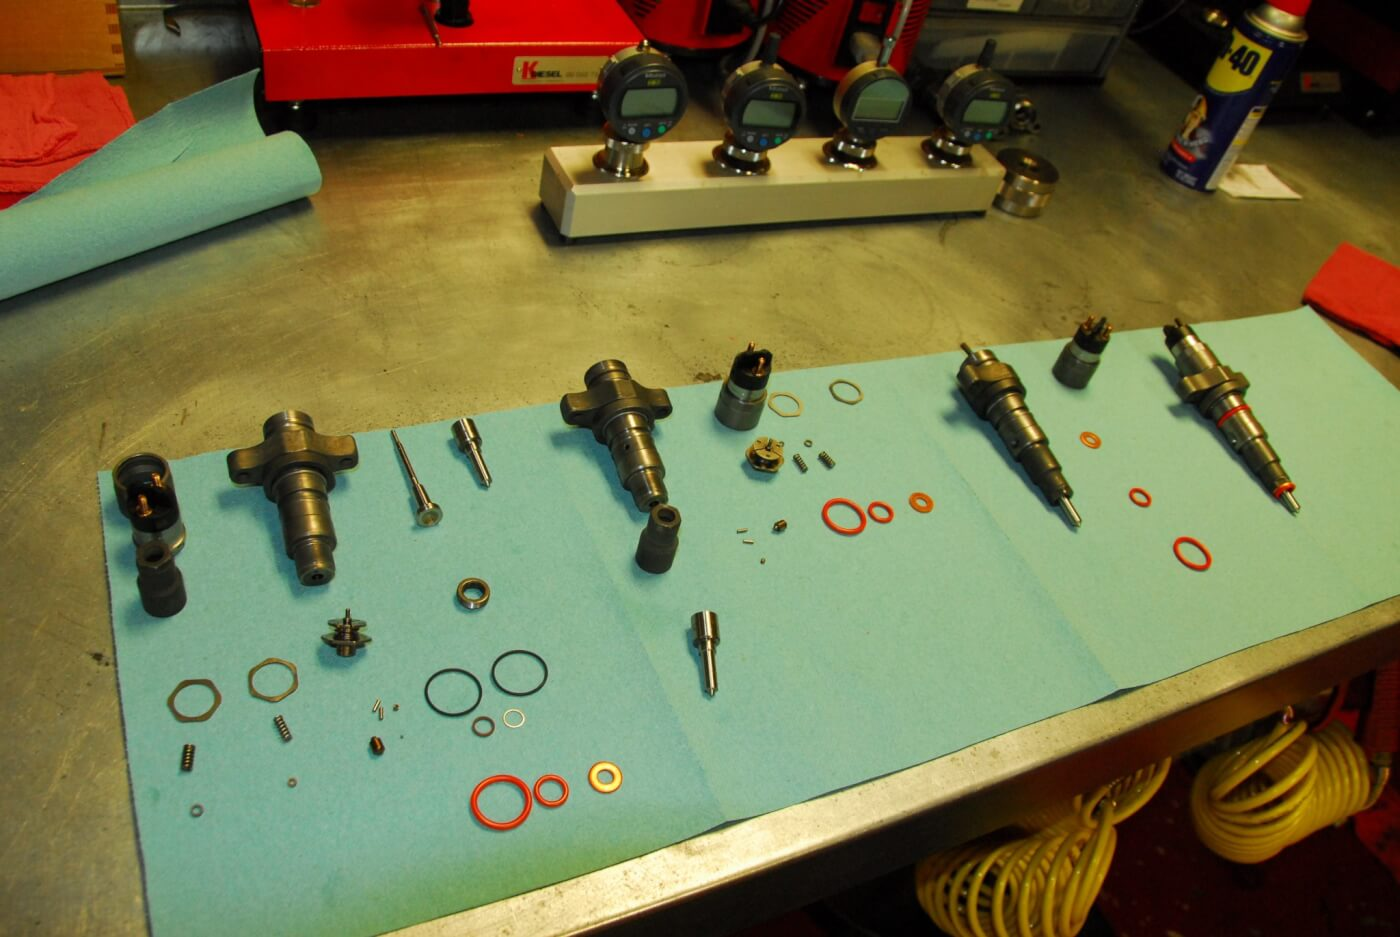 5. Shown here are all the high-pressure parts of a common rail system. These injectors are in various states of assembly. On the far left (top) are the solenoid, along with an air gap shim, armature, valve set with ball seat, seals and nozzle.